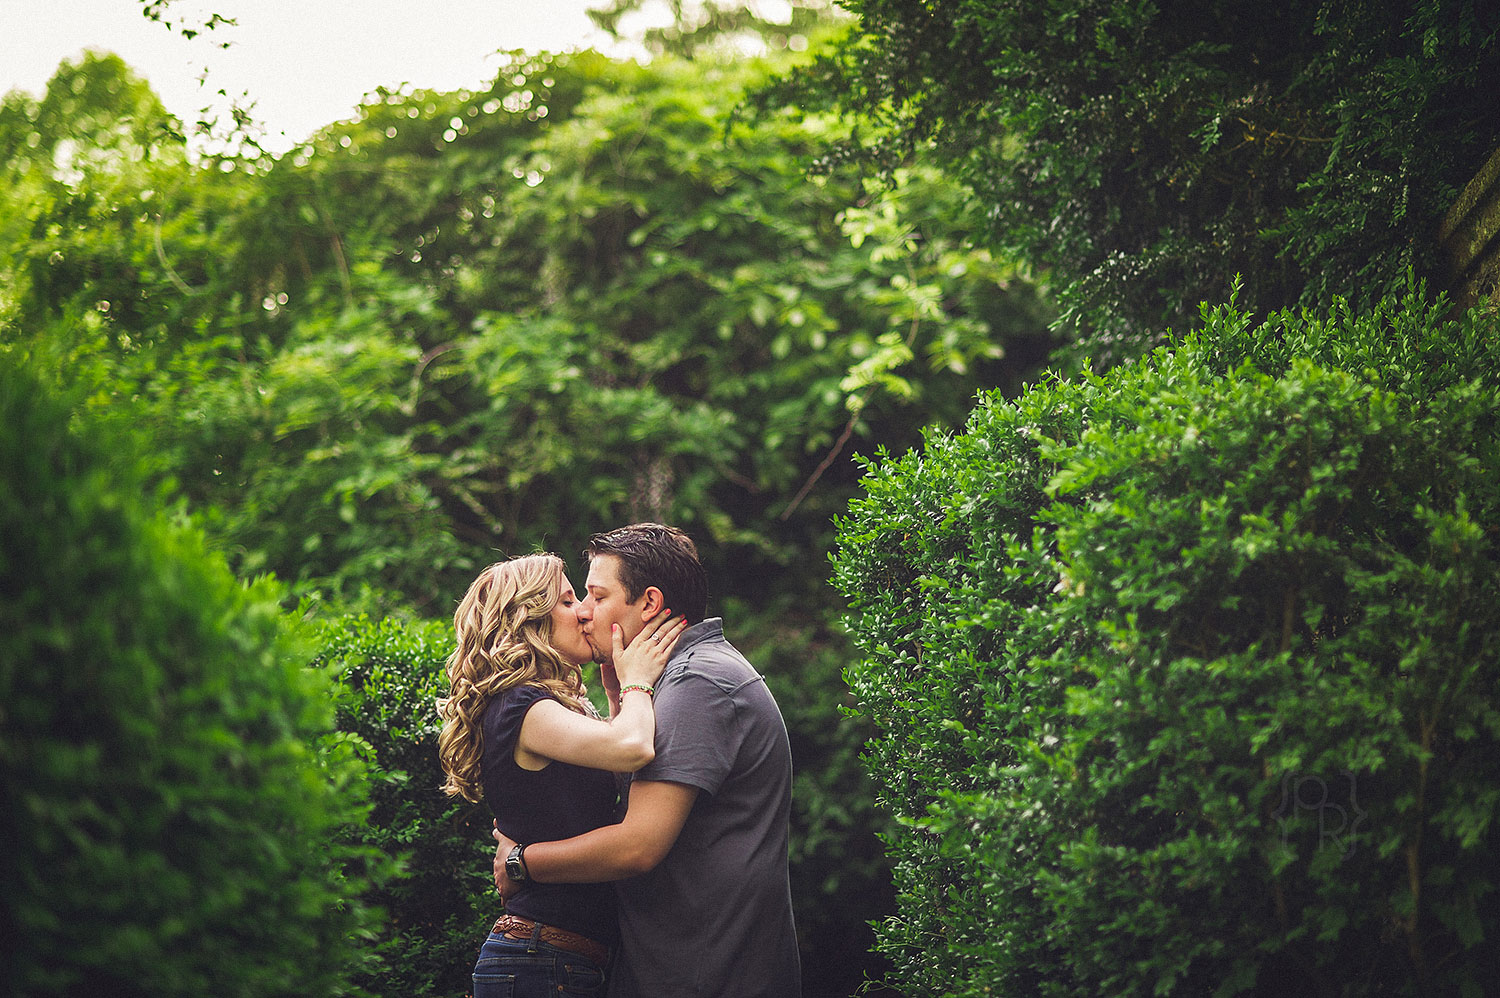 ridley-creek-state-park-engagment-session-14.jpg